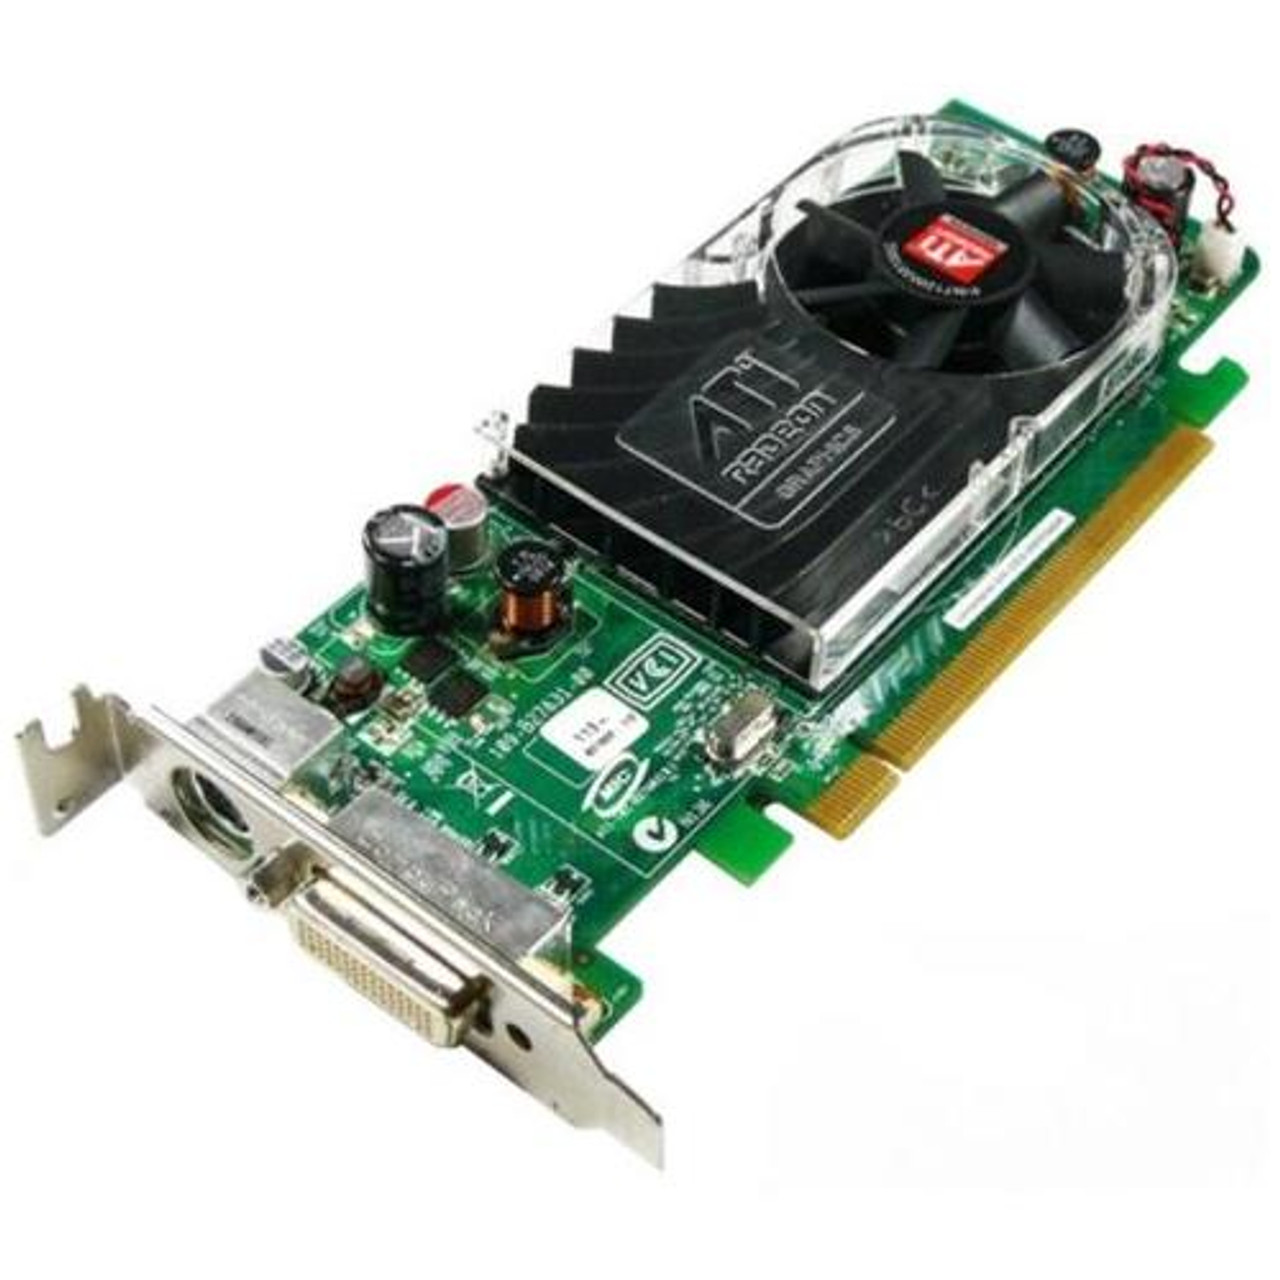 Dell ATI Radeon Hd 2400 Xt 256MB Pci-e DMS-59 Graphics Video Card 7123035100G